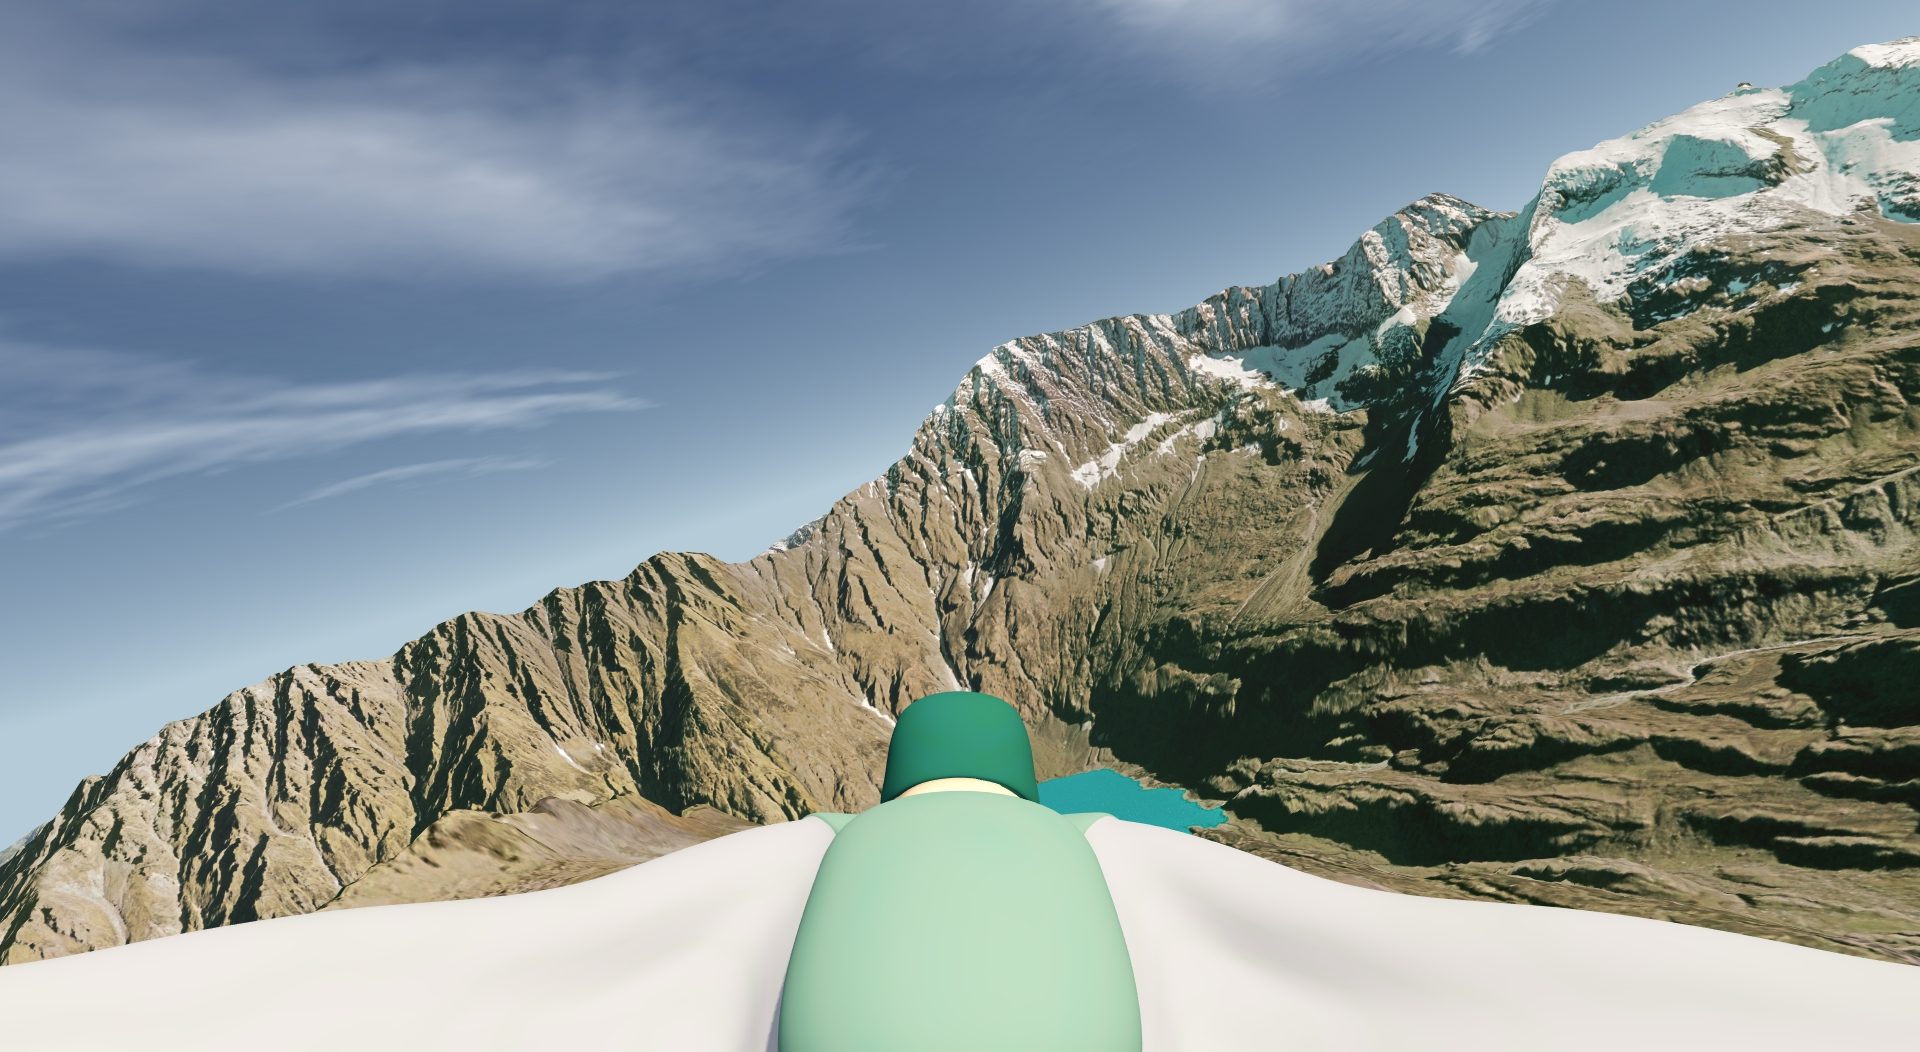 Wingsuit for aerofly FS